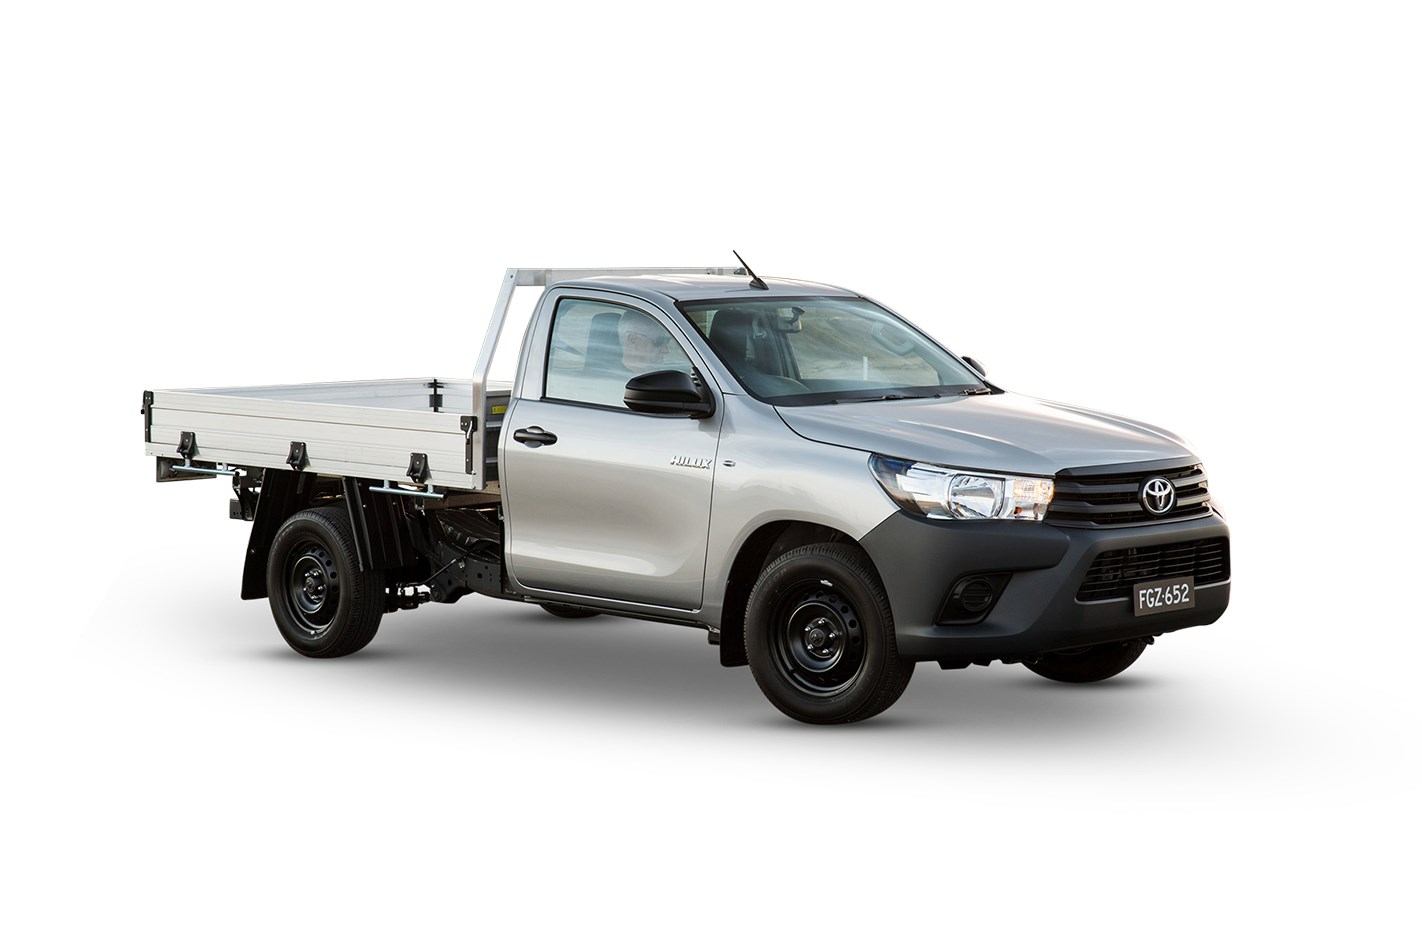 2017 toyota hilux workmate (4x4), 2.4l 4cyl diesel turbocharged